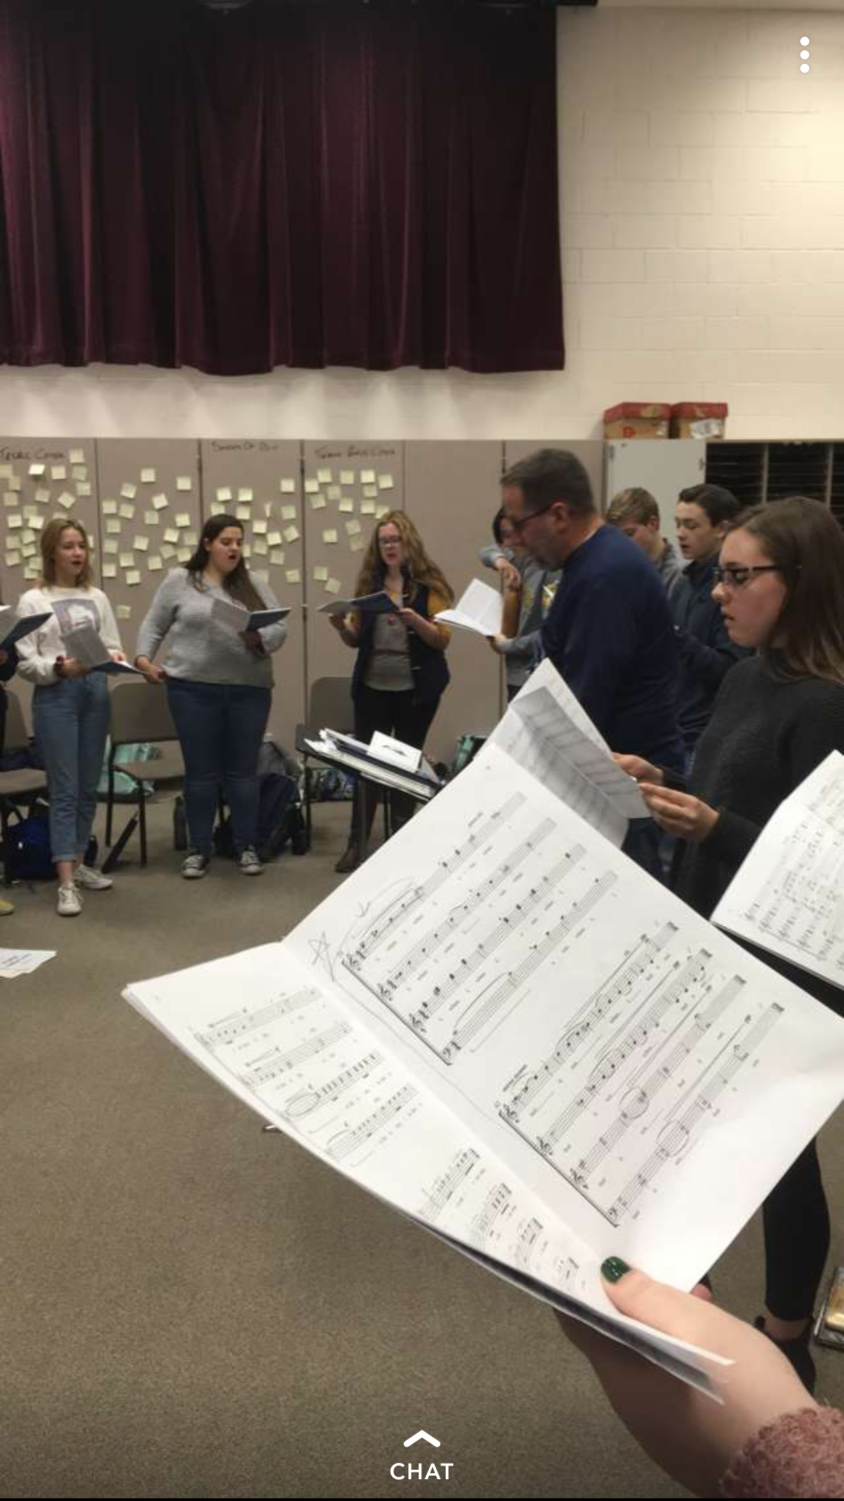 Jackson Howard captures a moment in rehearsal of the director Mr. Talley teaching new music.